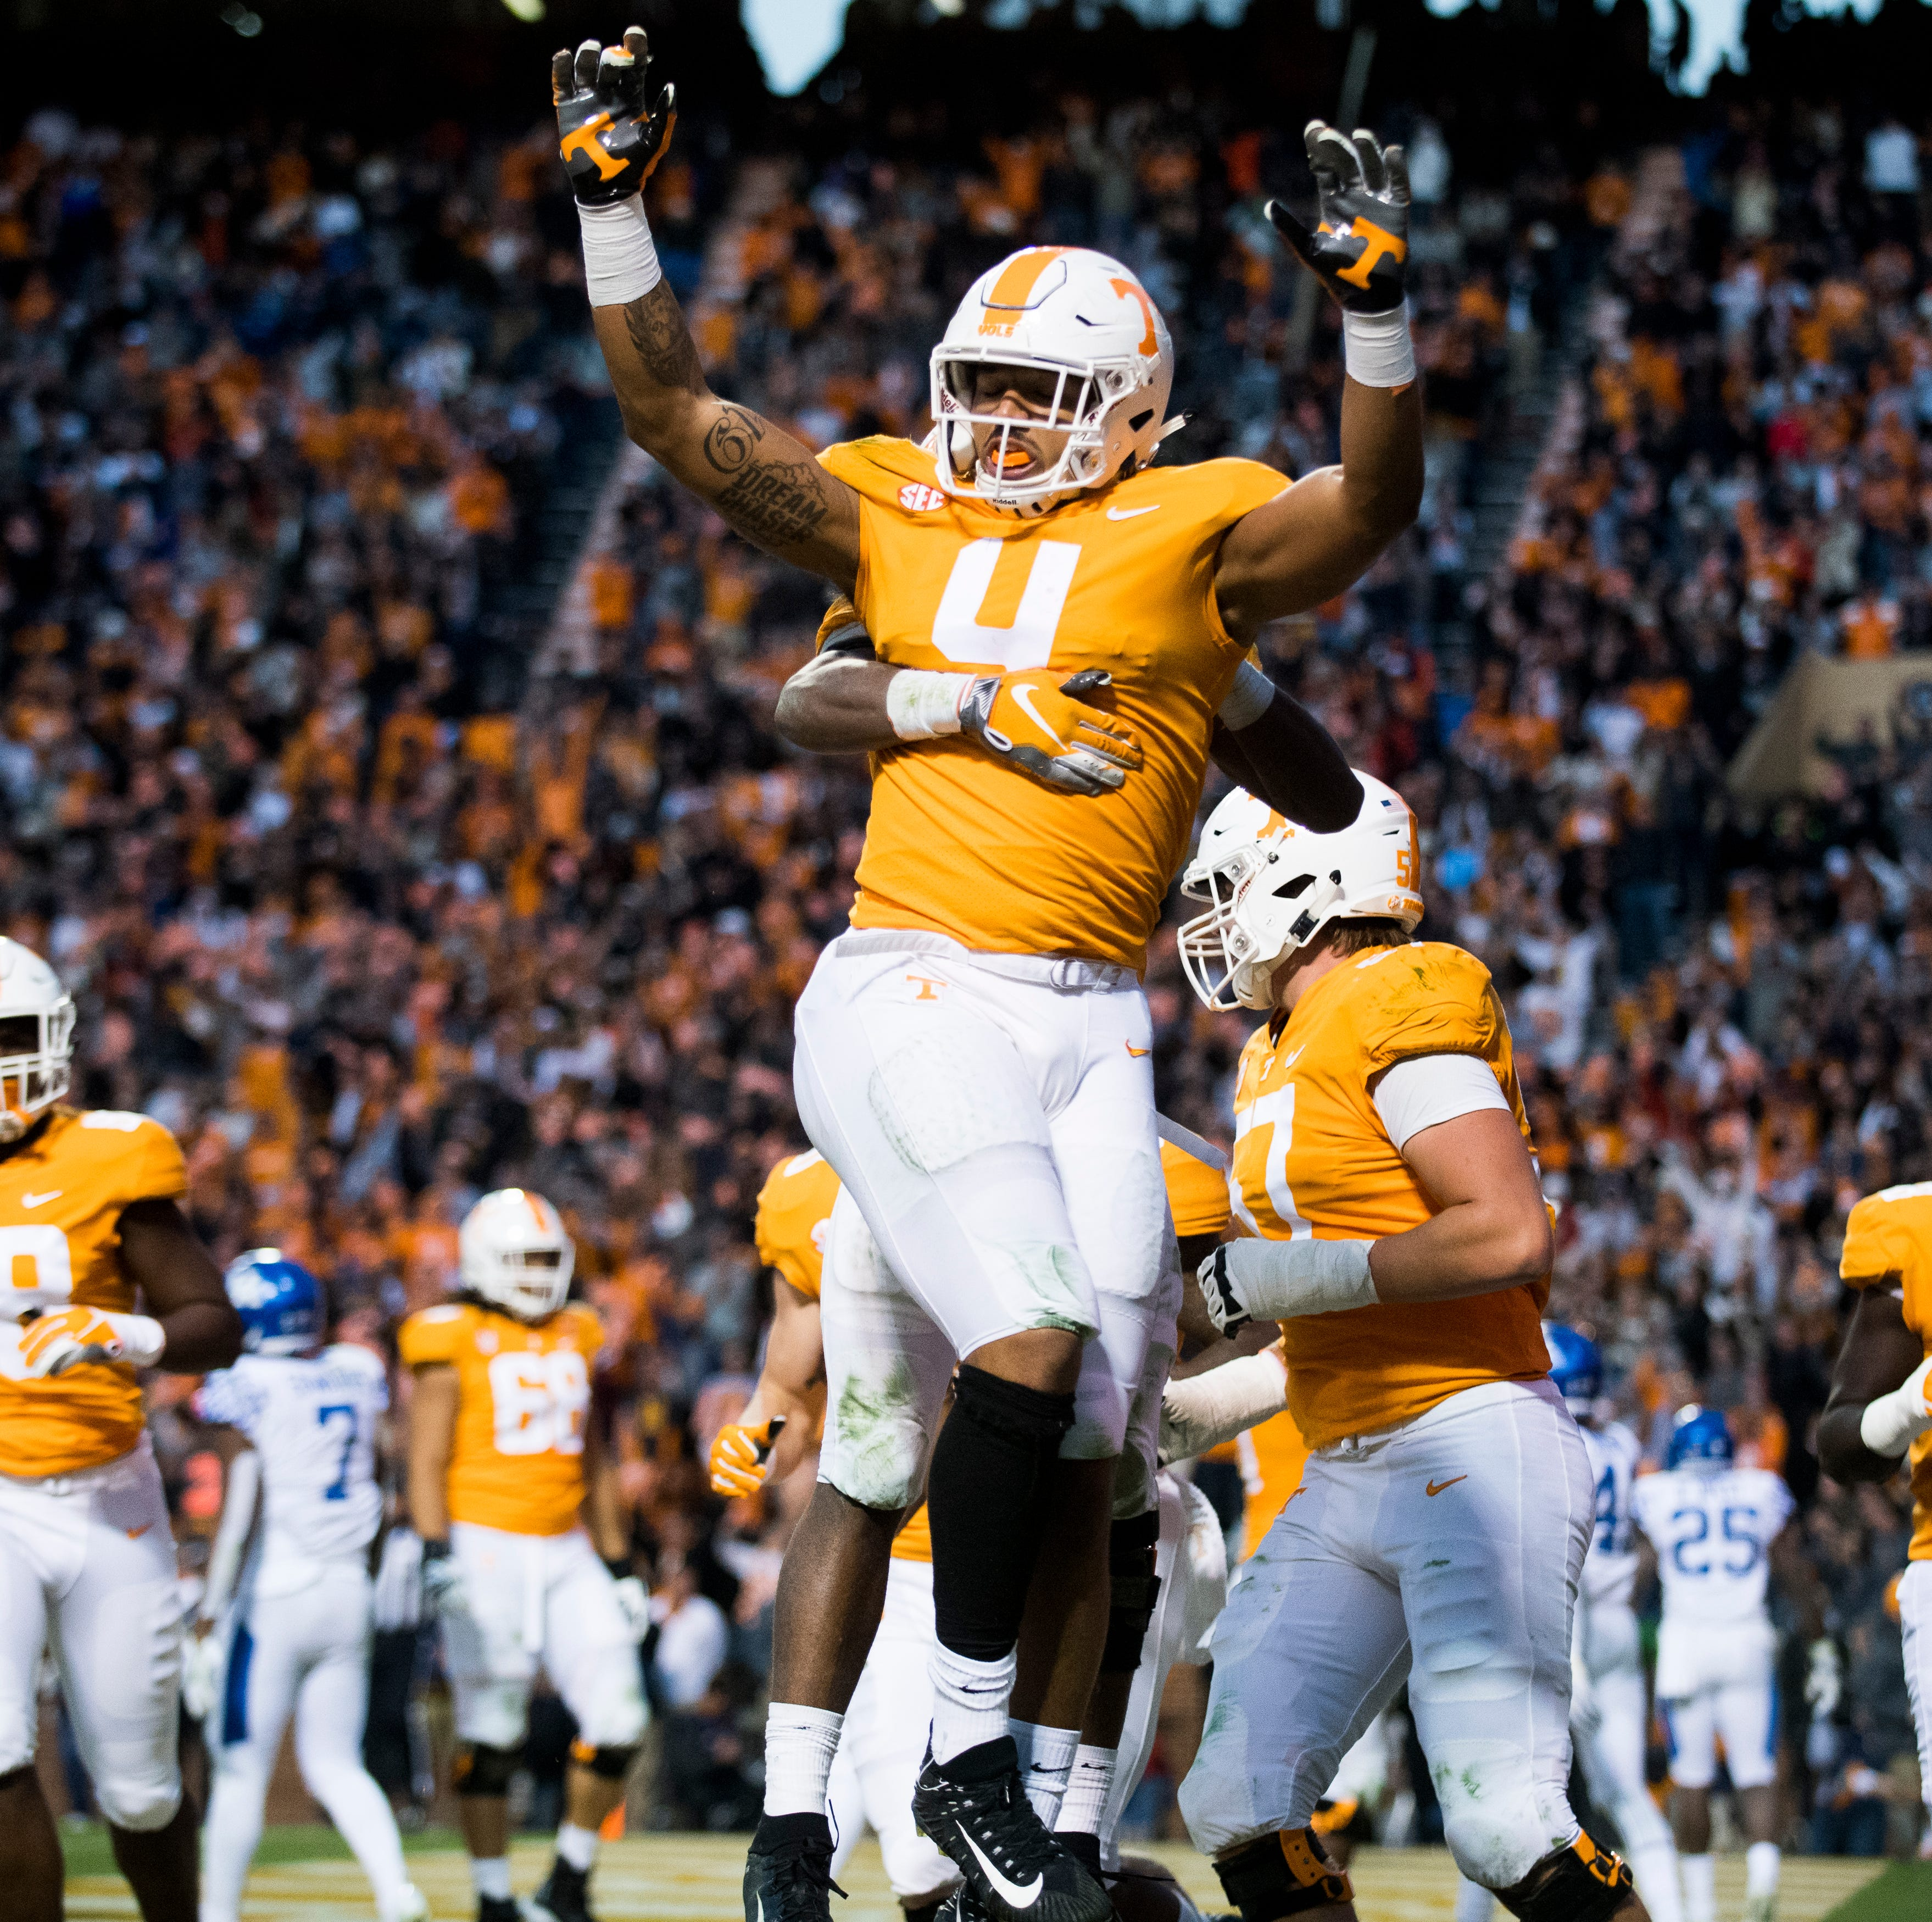 The Vols got by with a little help from their friend